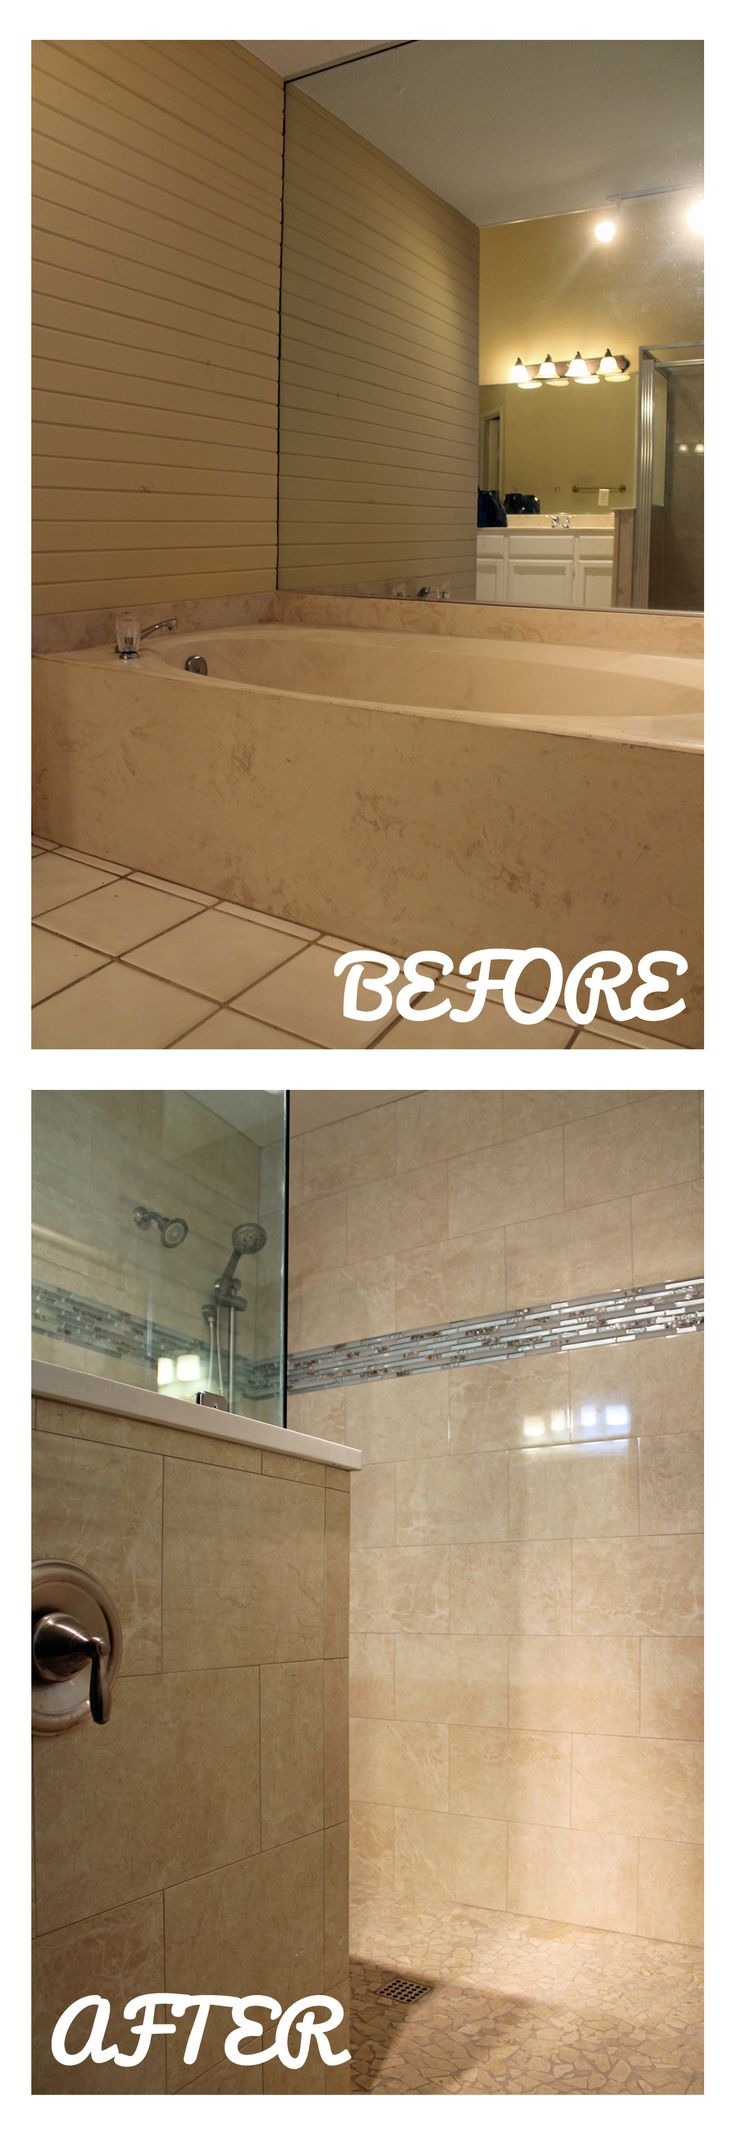 33 best before and after remodeling images on pinterest photo shower bath tub remodel before and after